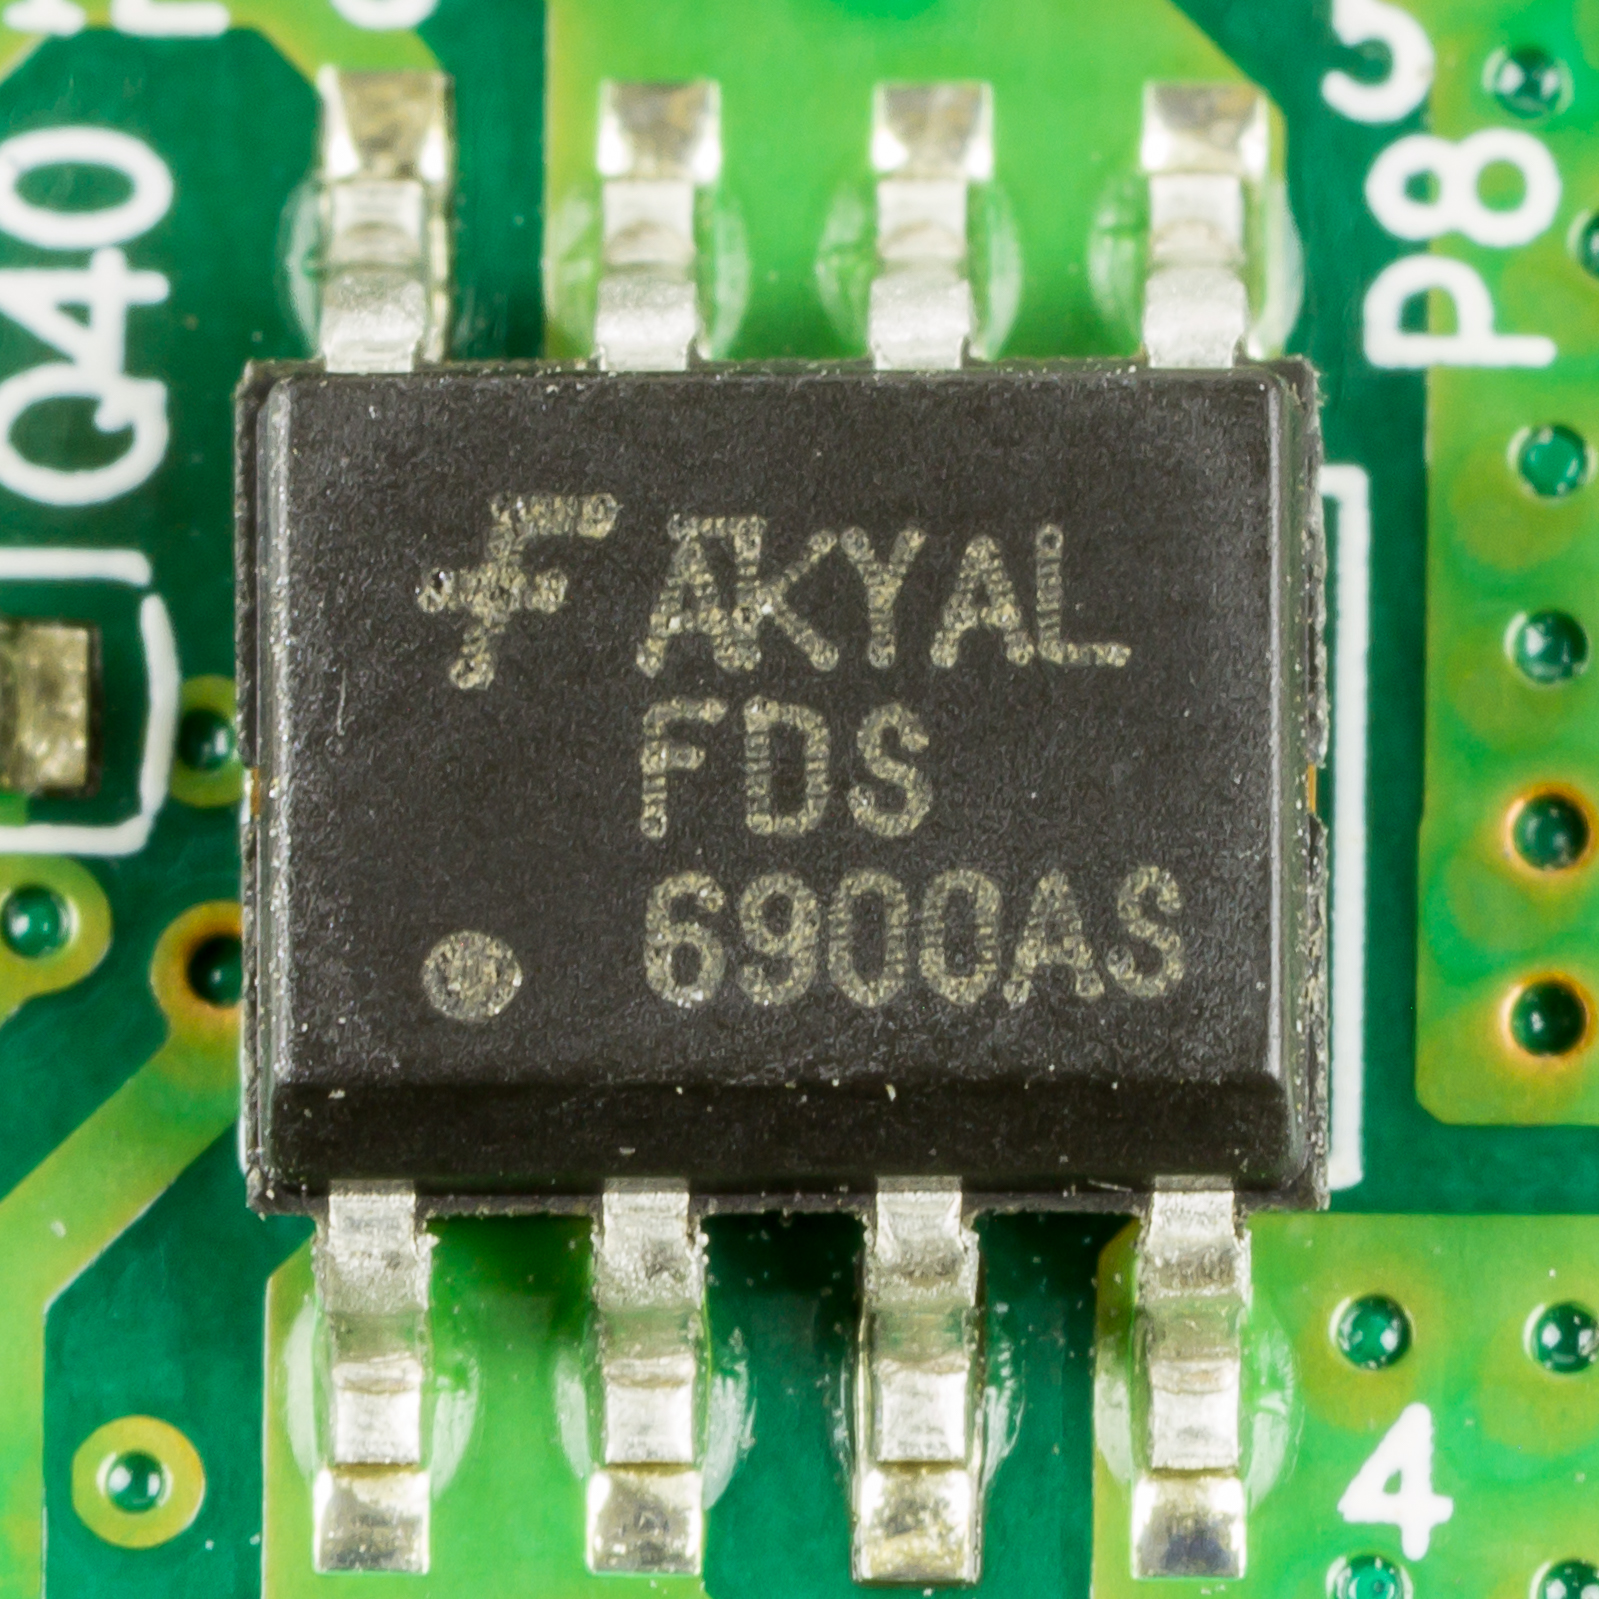 File:Terra Pad 1050 - Fairchild FDS6900AS on mainboard-0637